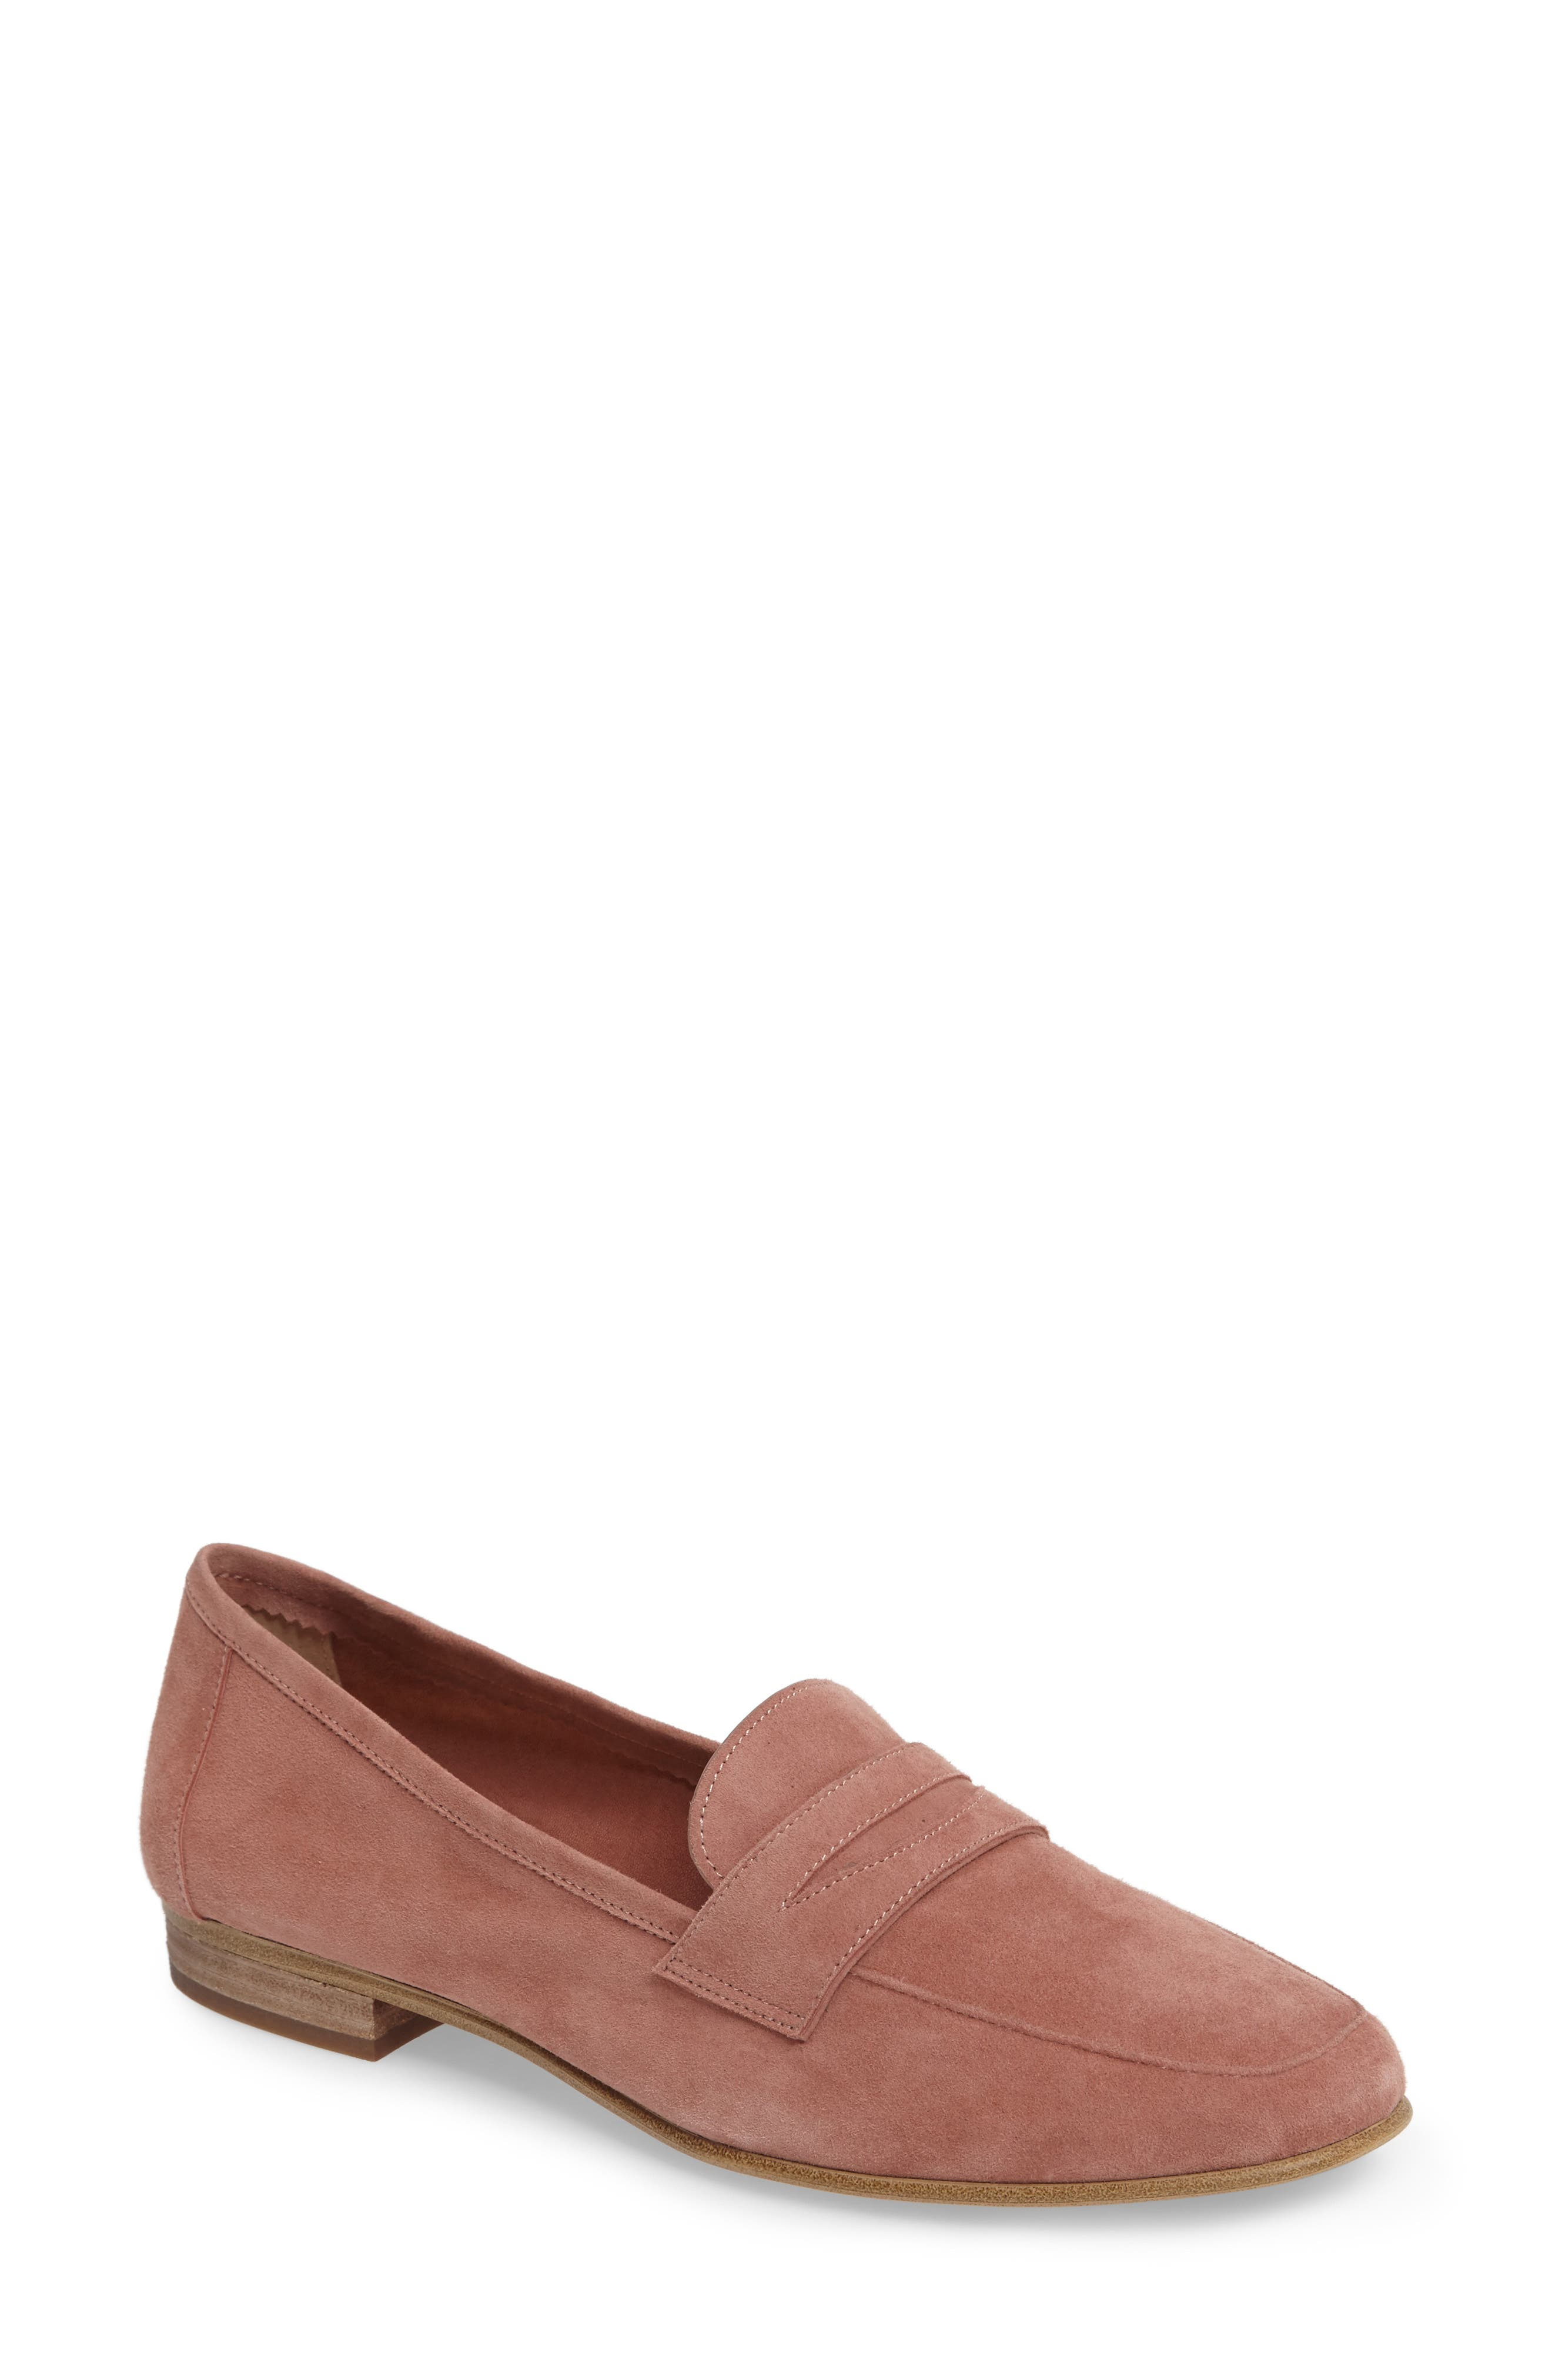 Elroy Penny Loafer,                             Main thumbnail 4, color,